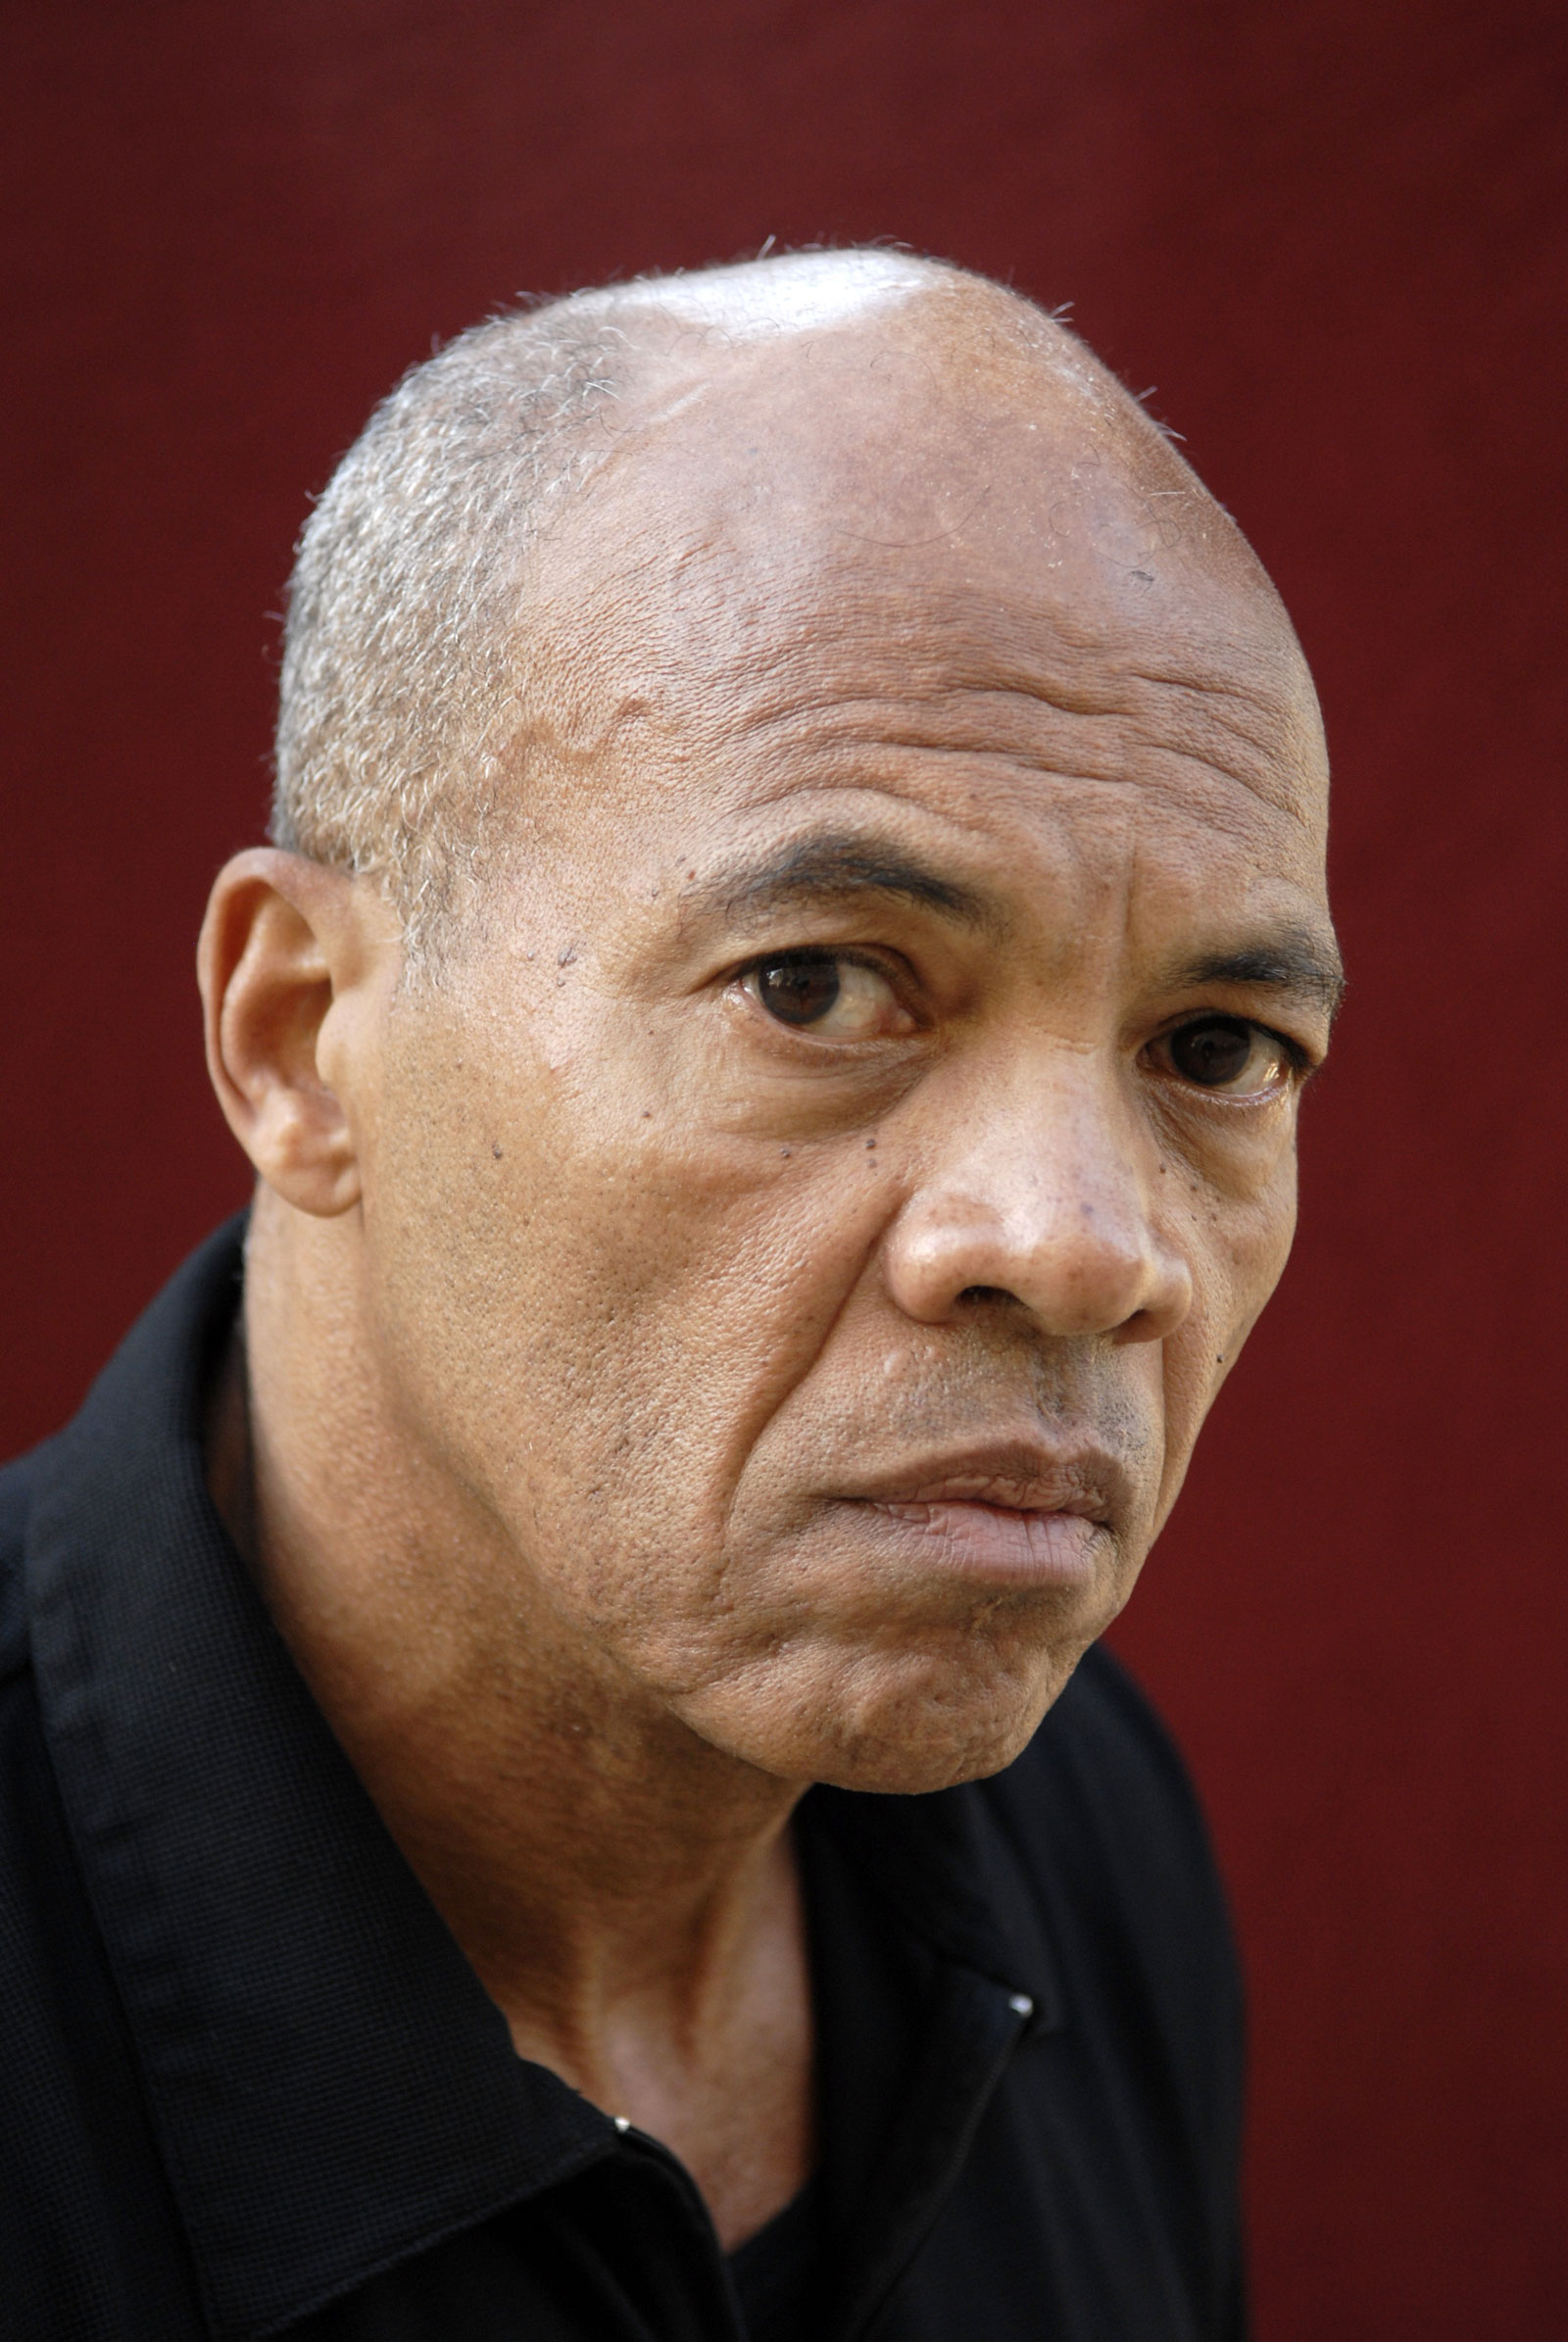 A close-up image of the writer John Edgar Wideman from the chest up in front of a red background